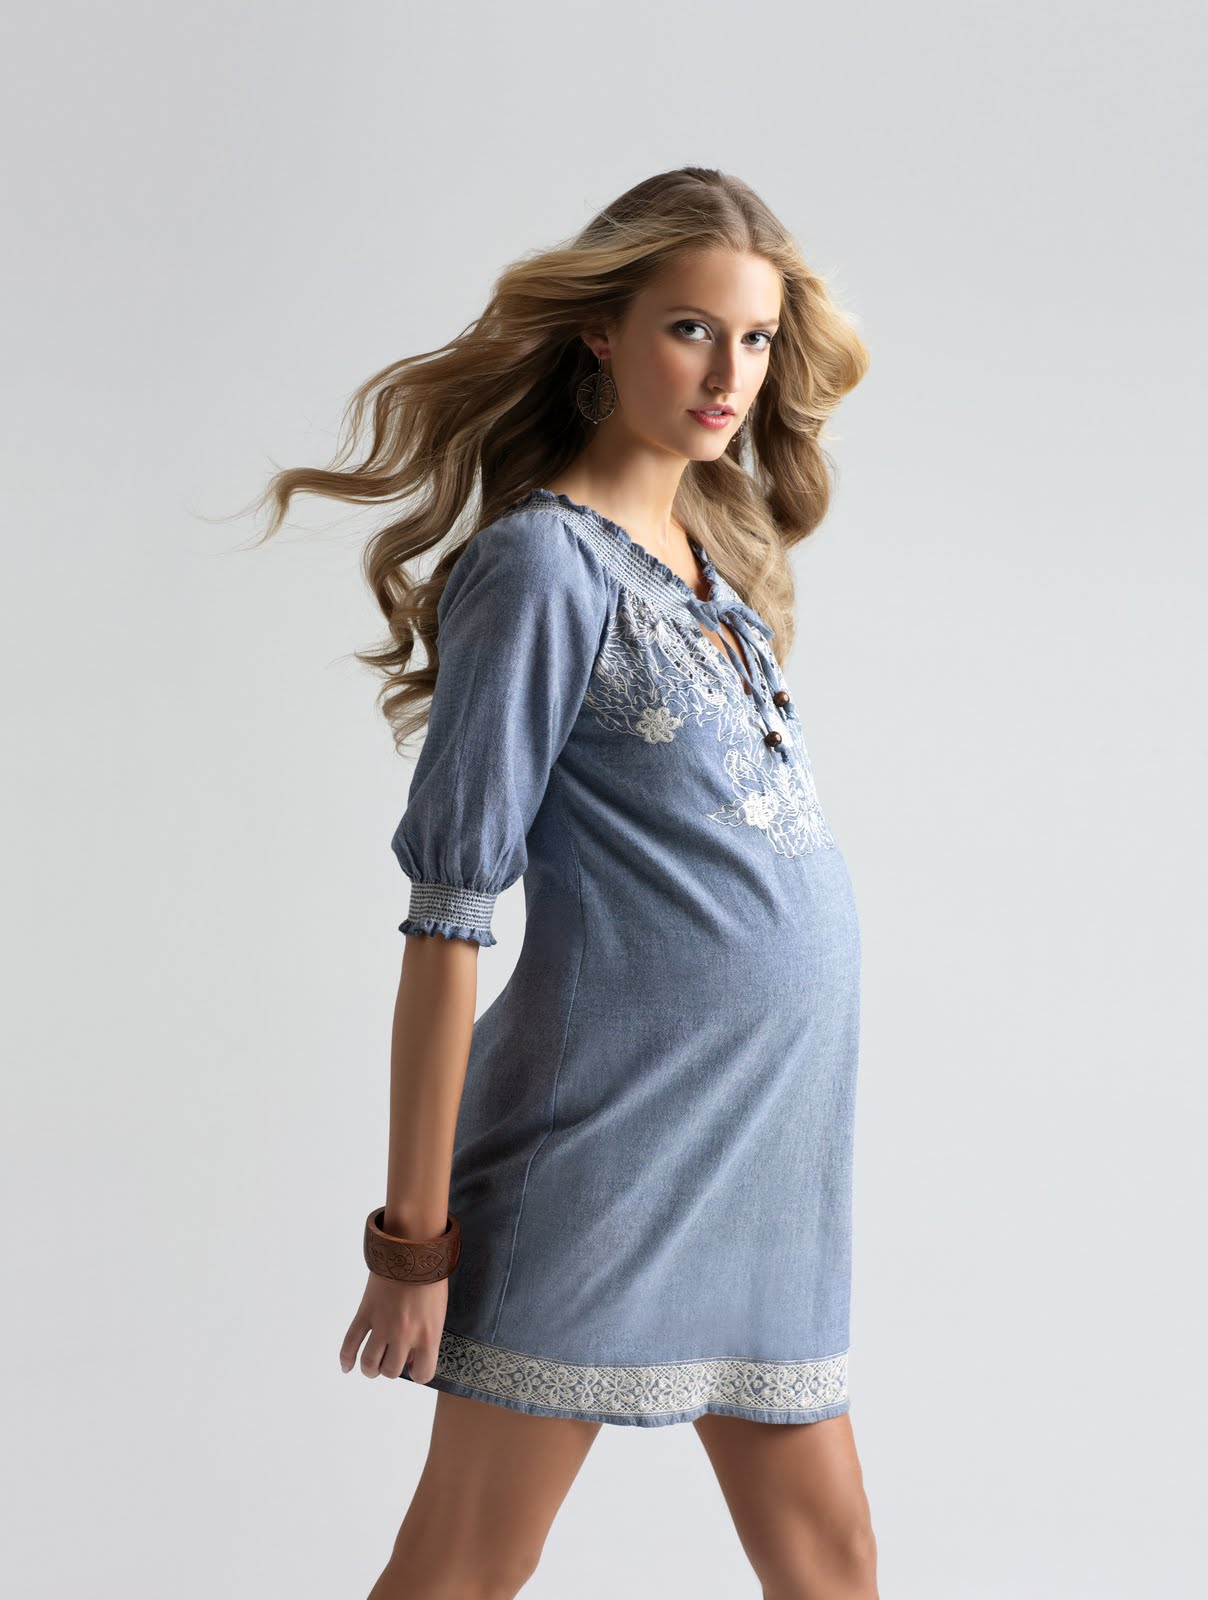 Best Online Maternity Clothes